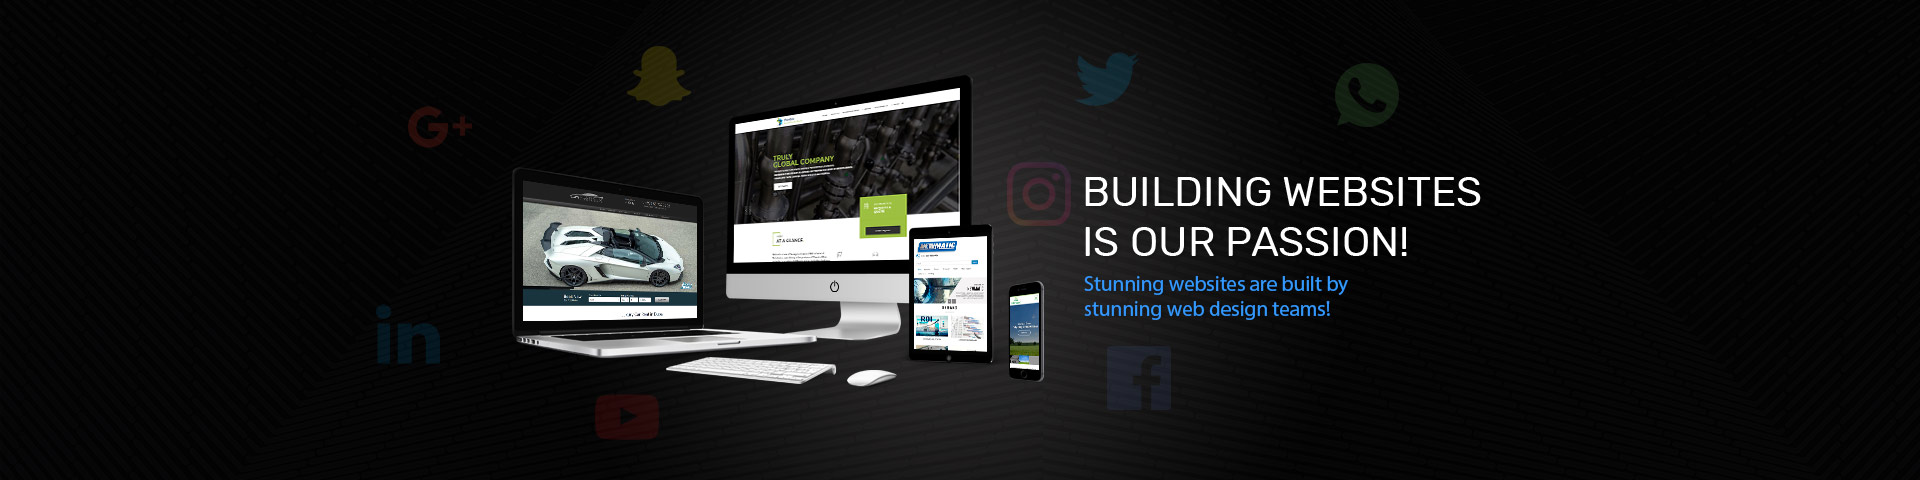 Web Design Company UAE, Ecommerce Web Development Company Sharjah UAE